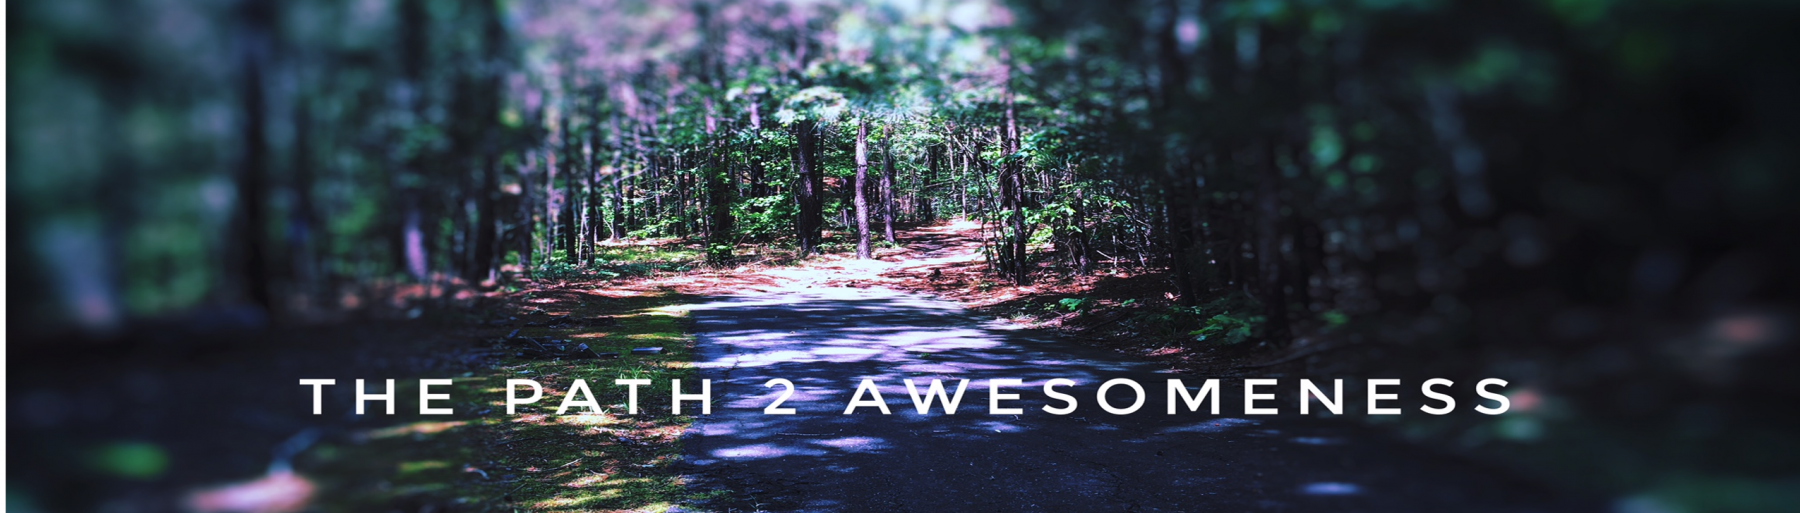 The Path 2 Awesomeness!!